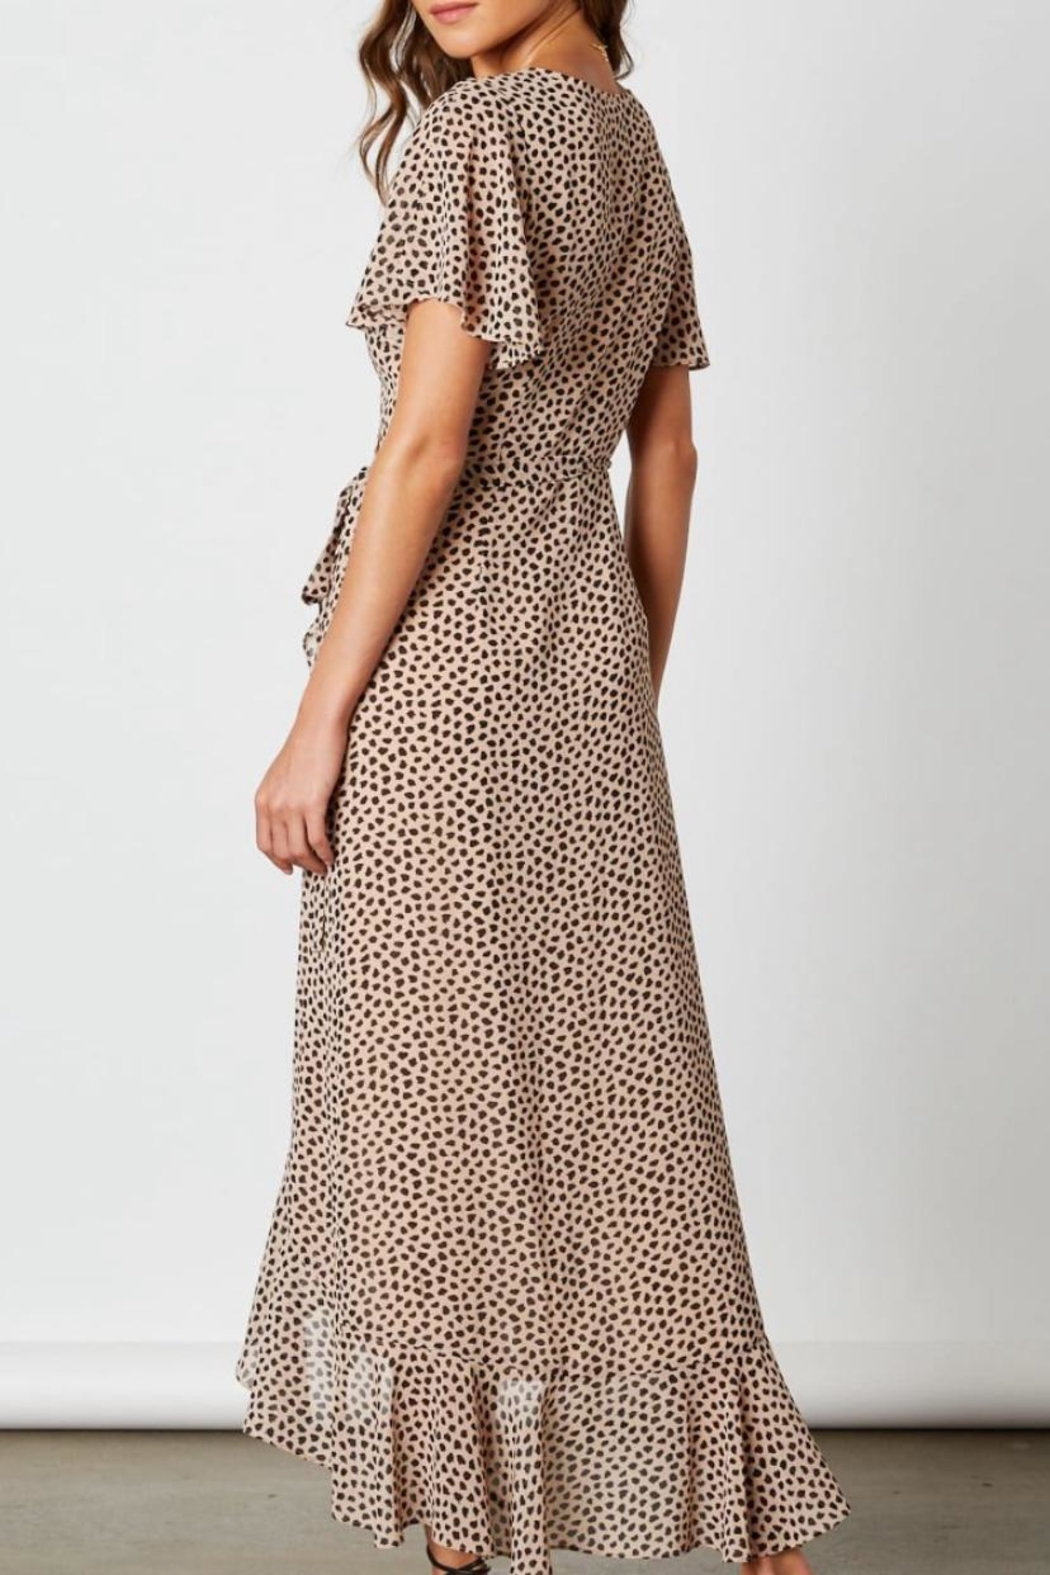 Cotton Candy LA Animal Print Wrap-Dress - Front Full Image